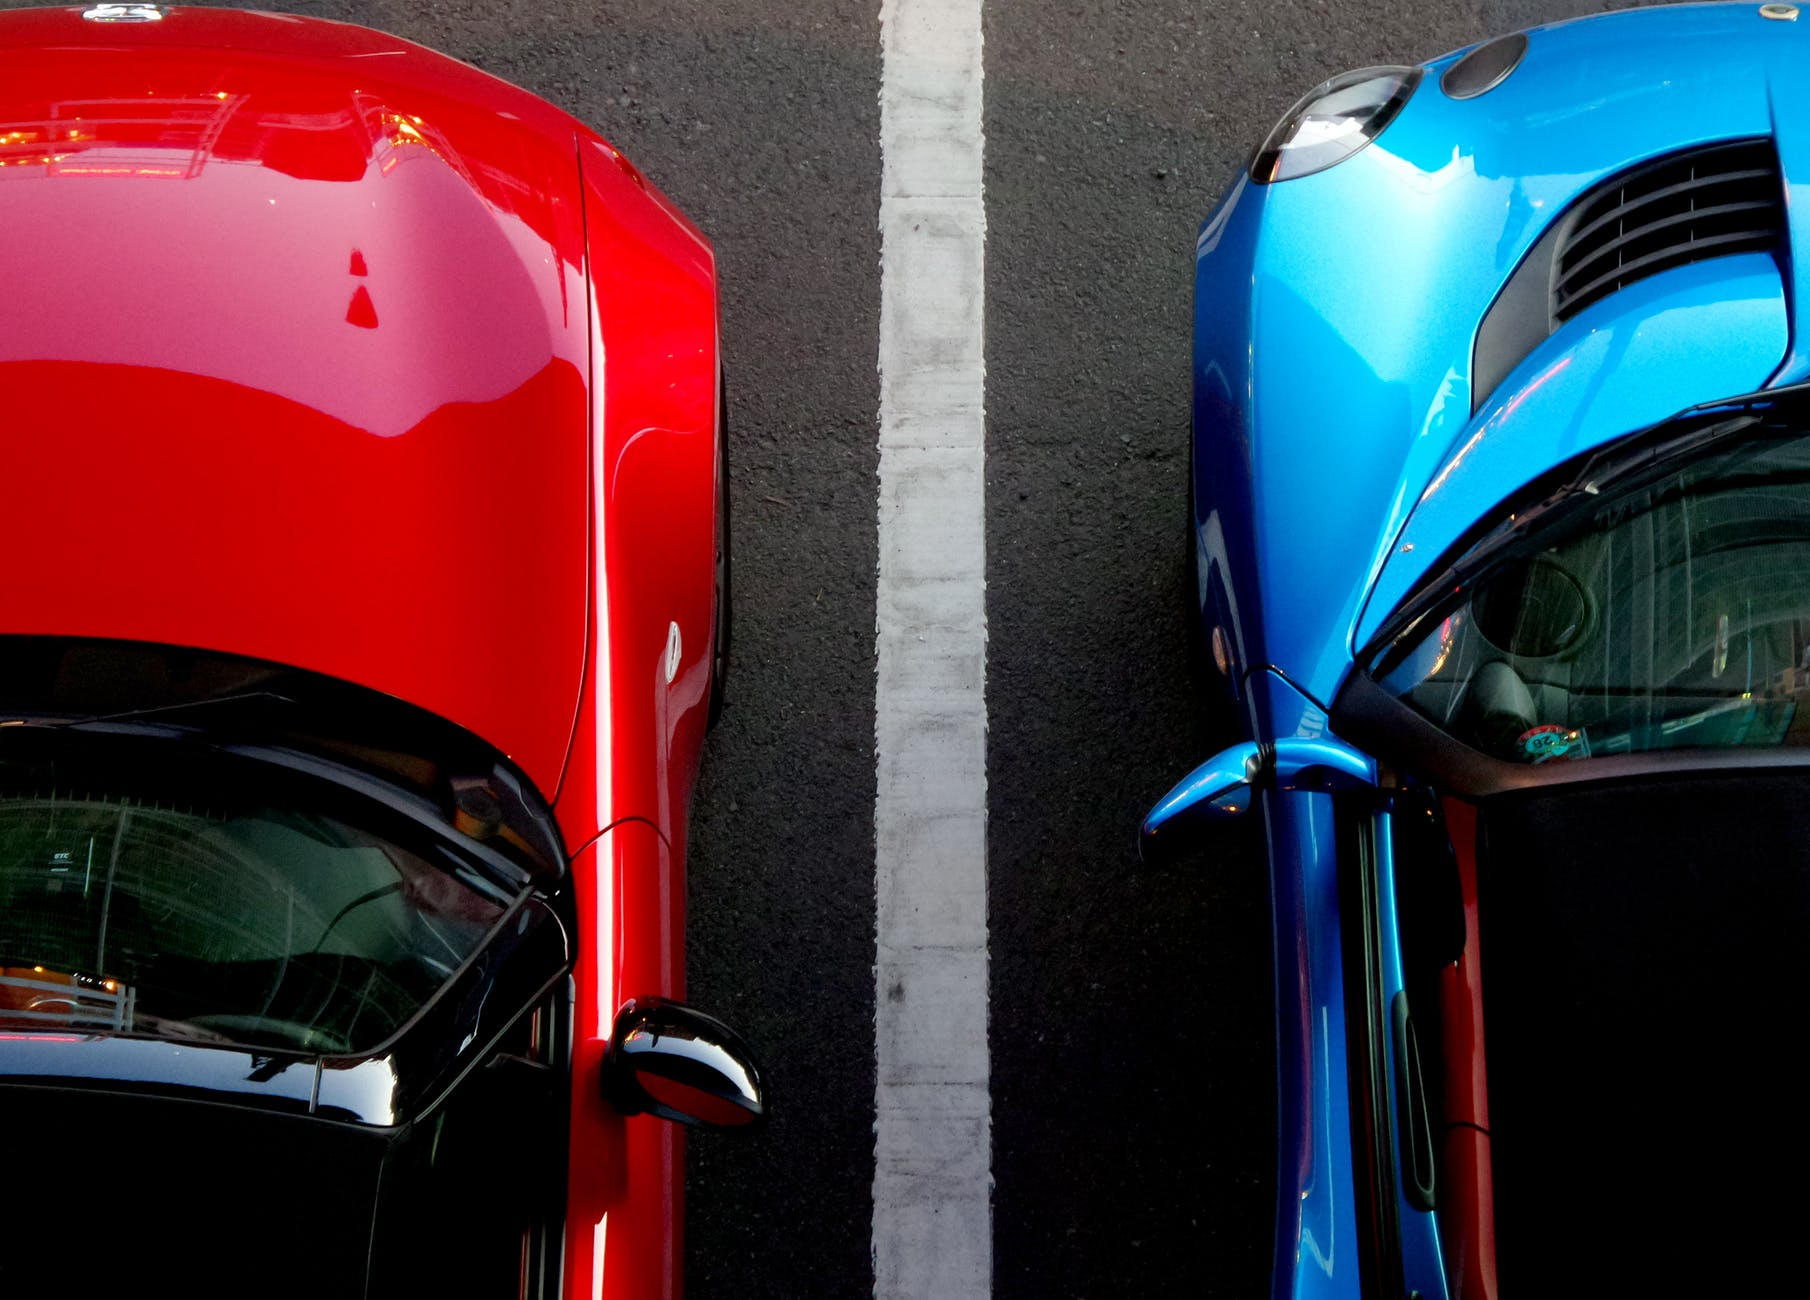 close up view of cars